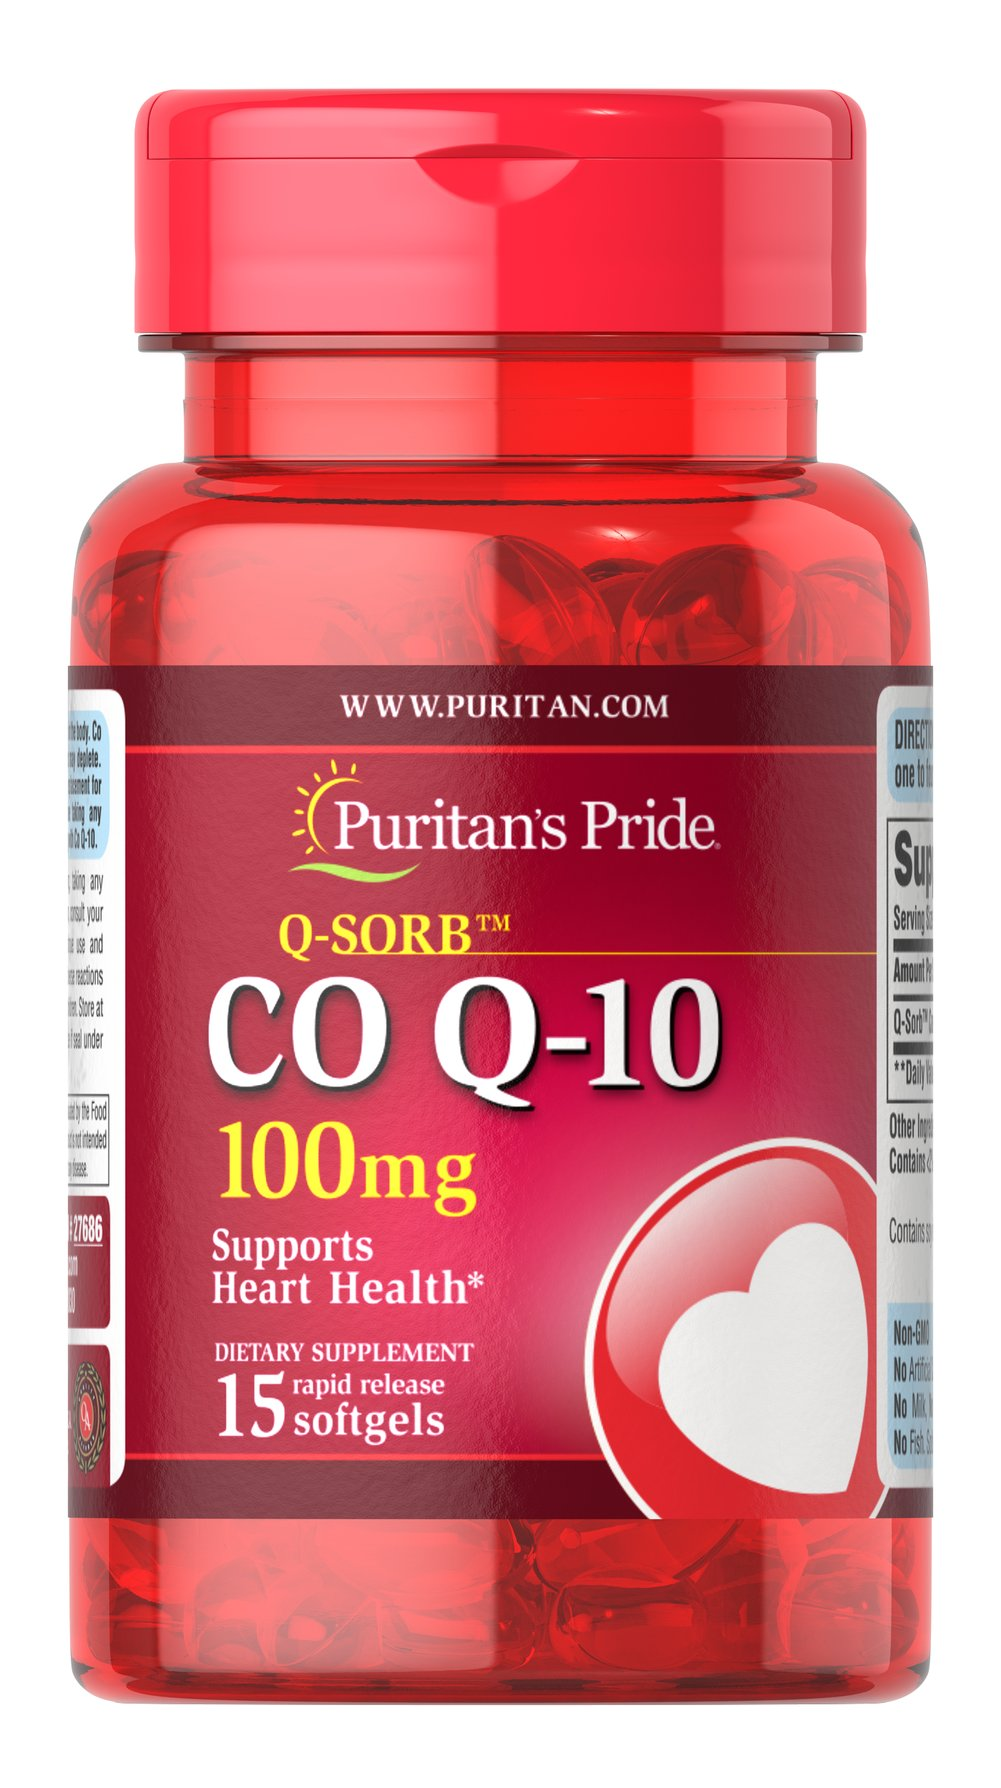 Co Q-10 100 mg <p>Puritan's Pride Q-Sorb™ Co Q-10 provides antioxidant support for your heart and ensures potency and purity.**</p><p>Our Q-Sorb™ Co Q-10 is hermetically sealed in rapid release softgels to provide superior absorption.   Contributes to your heart and cardiovascular wellness**</p><p>Helps support blood pressure levels already within a normal range**</p><p>   Promotes energy production within your heart, brain, and muscles**</p>  15 S